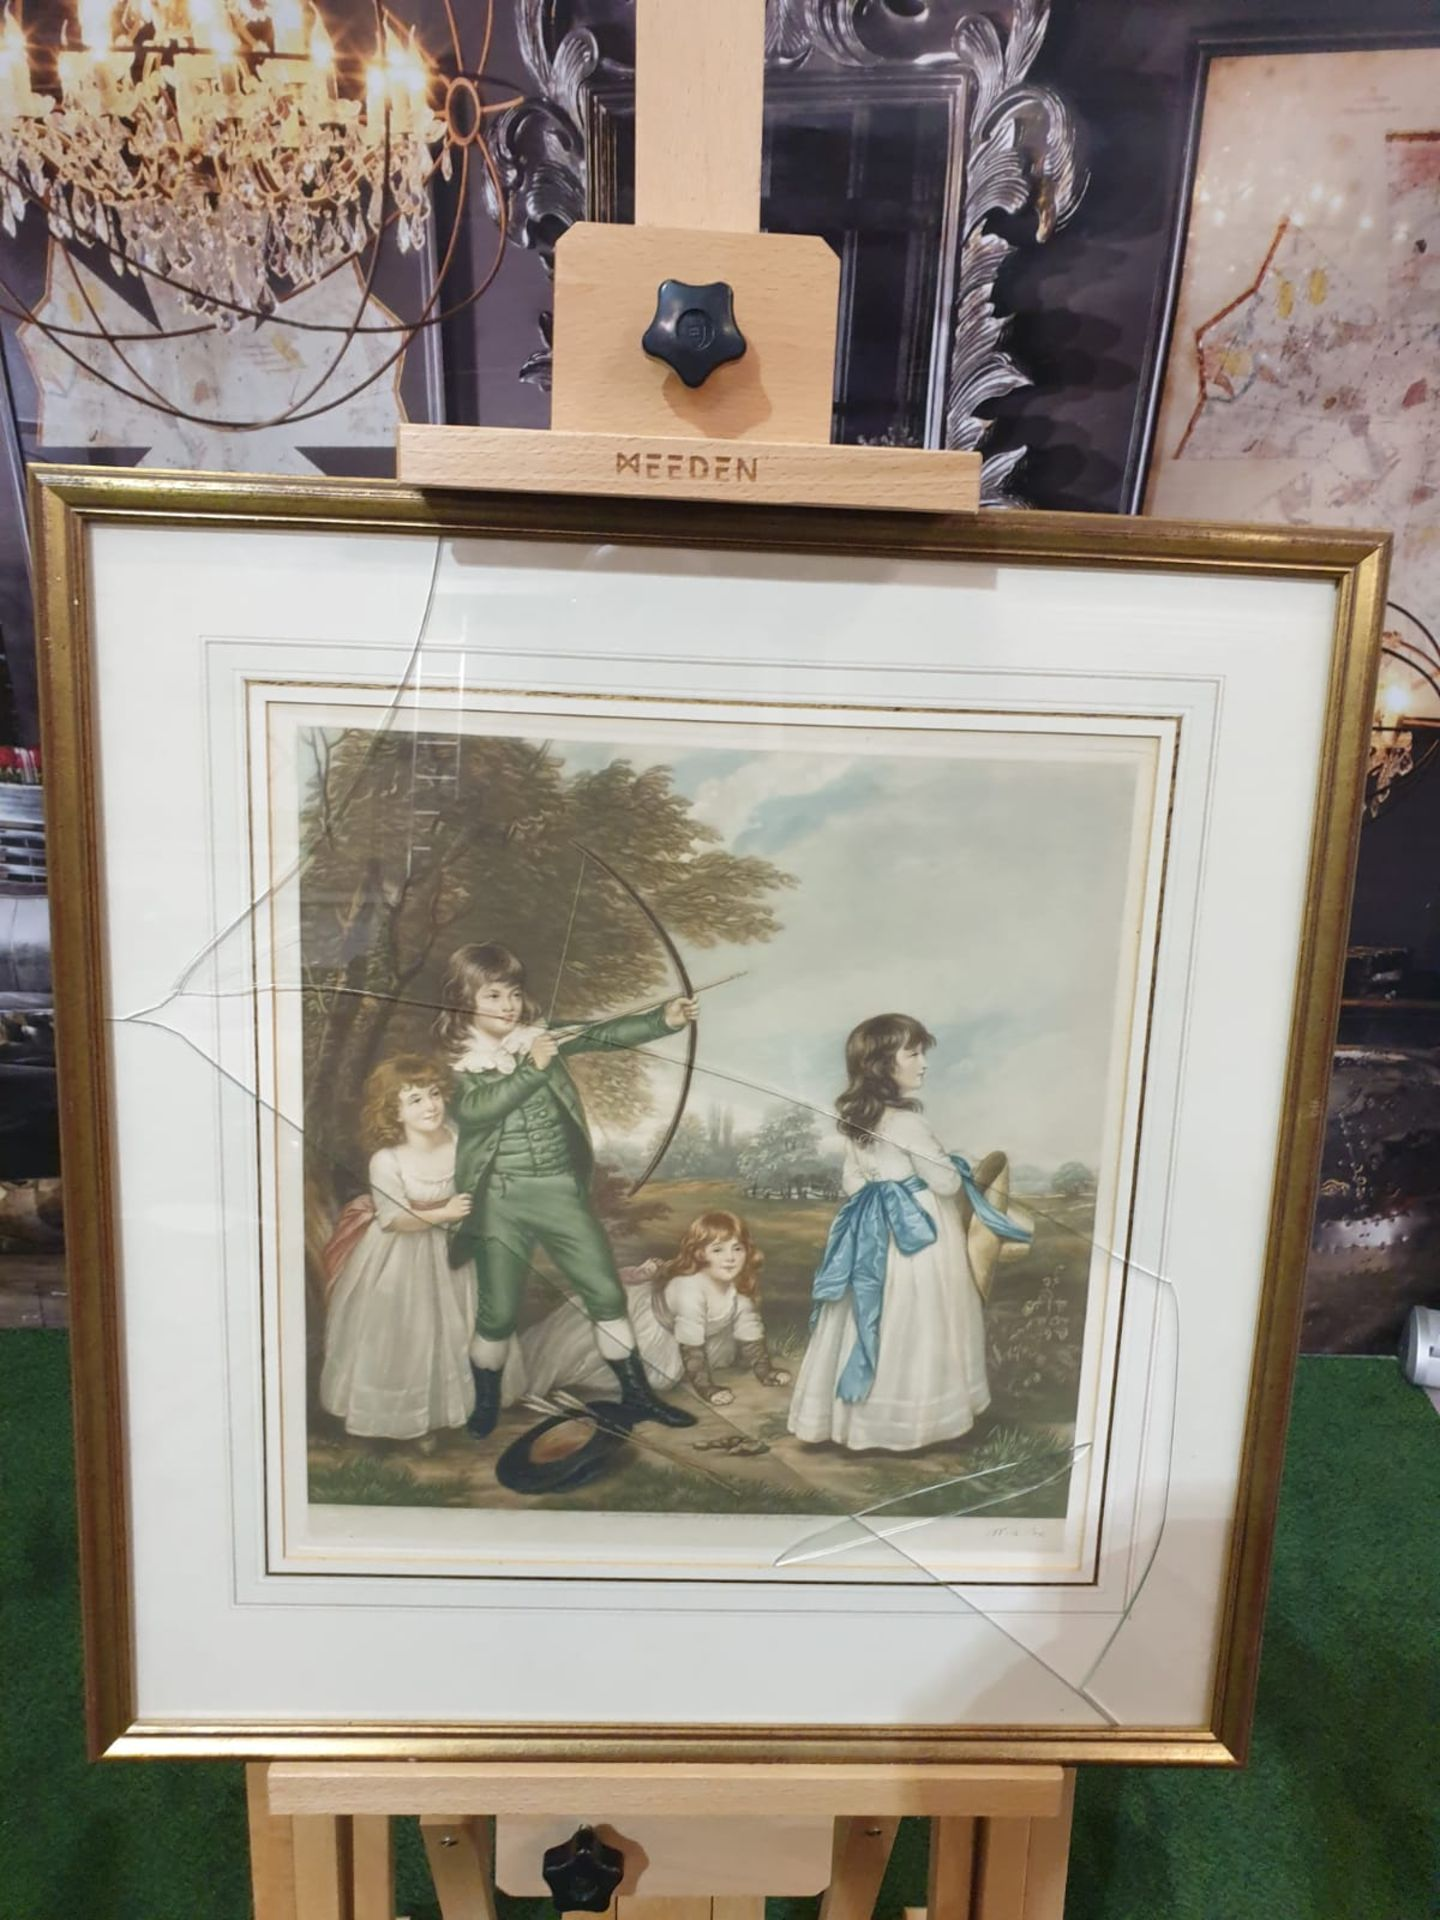 Framed coloured print of 4 Children playing, 1 child doing archery, hat and arrows on ground in